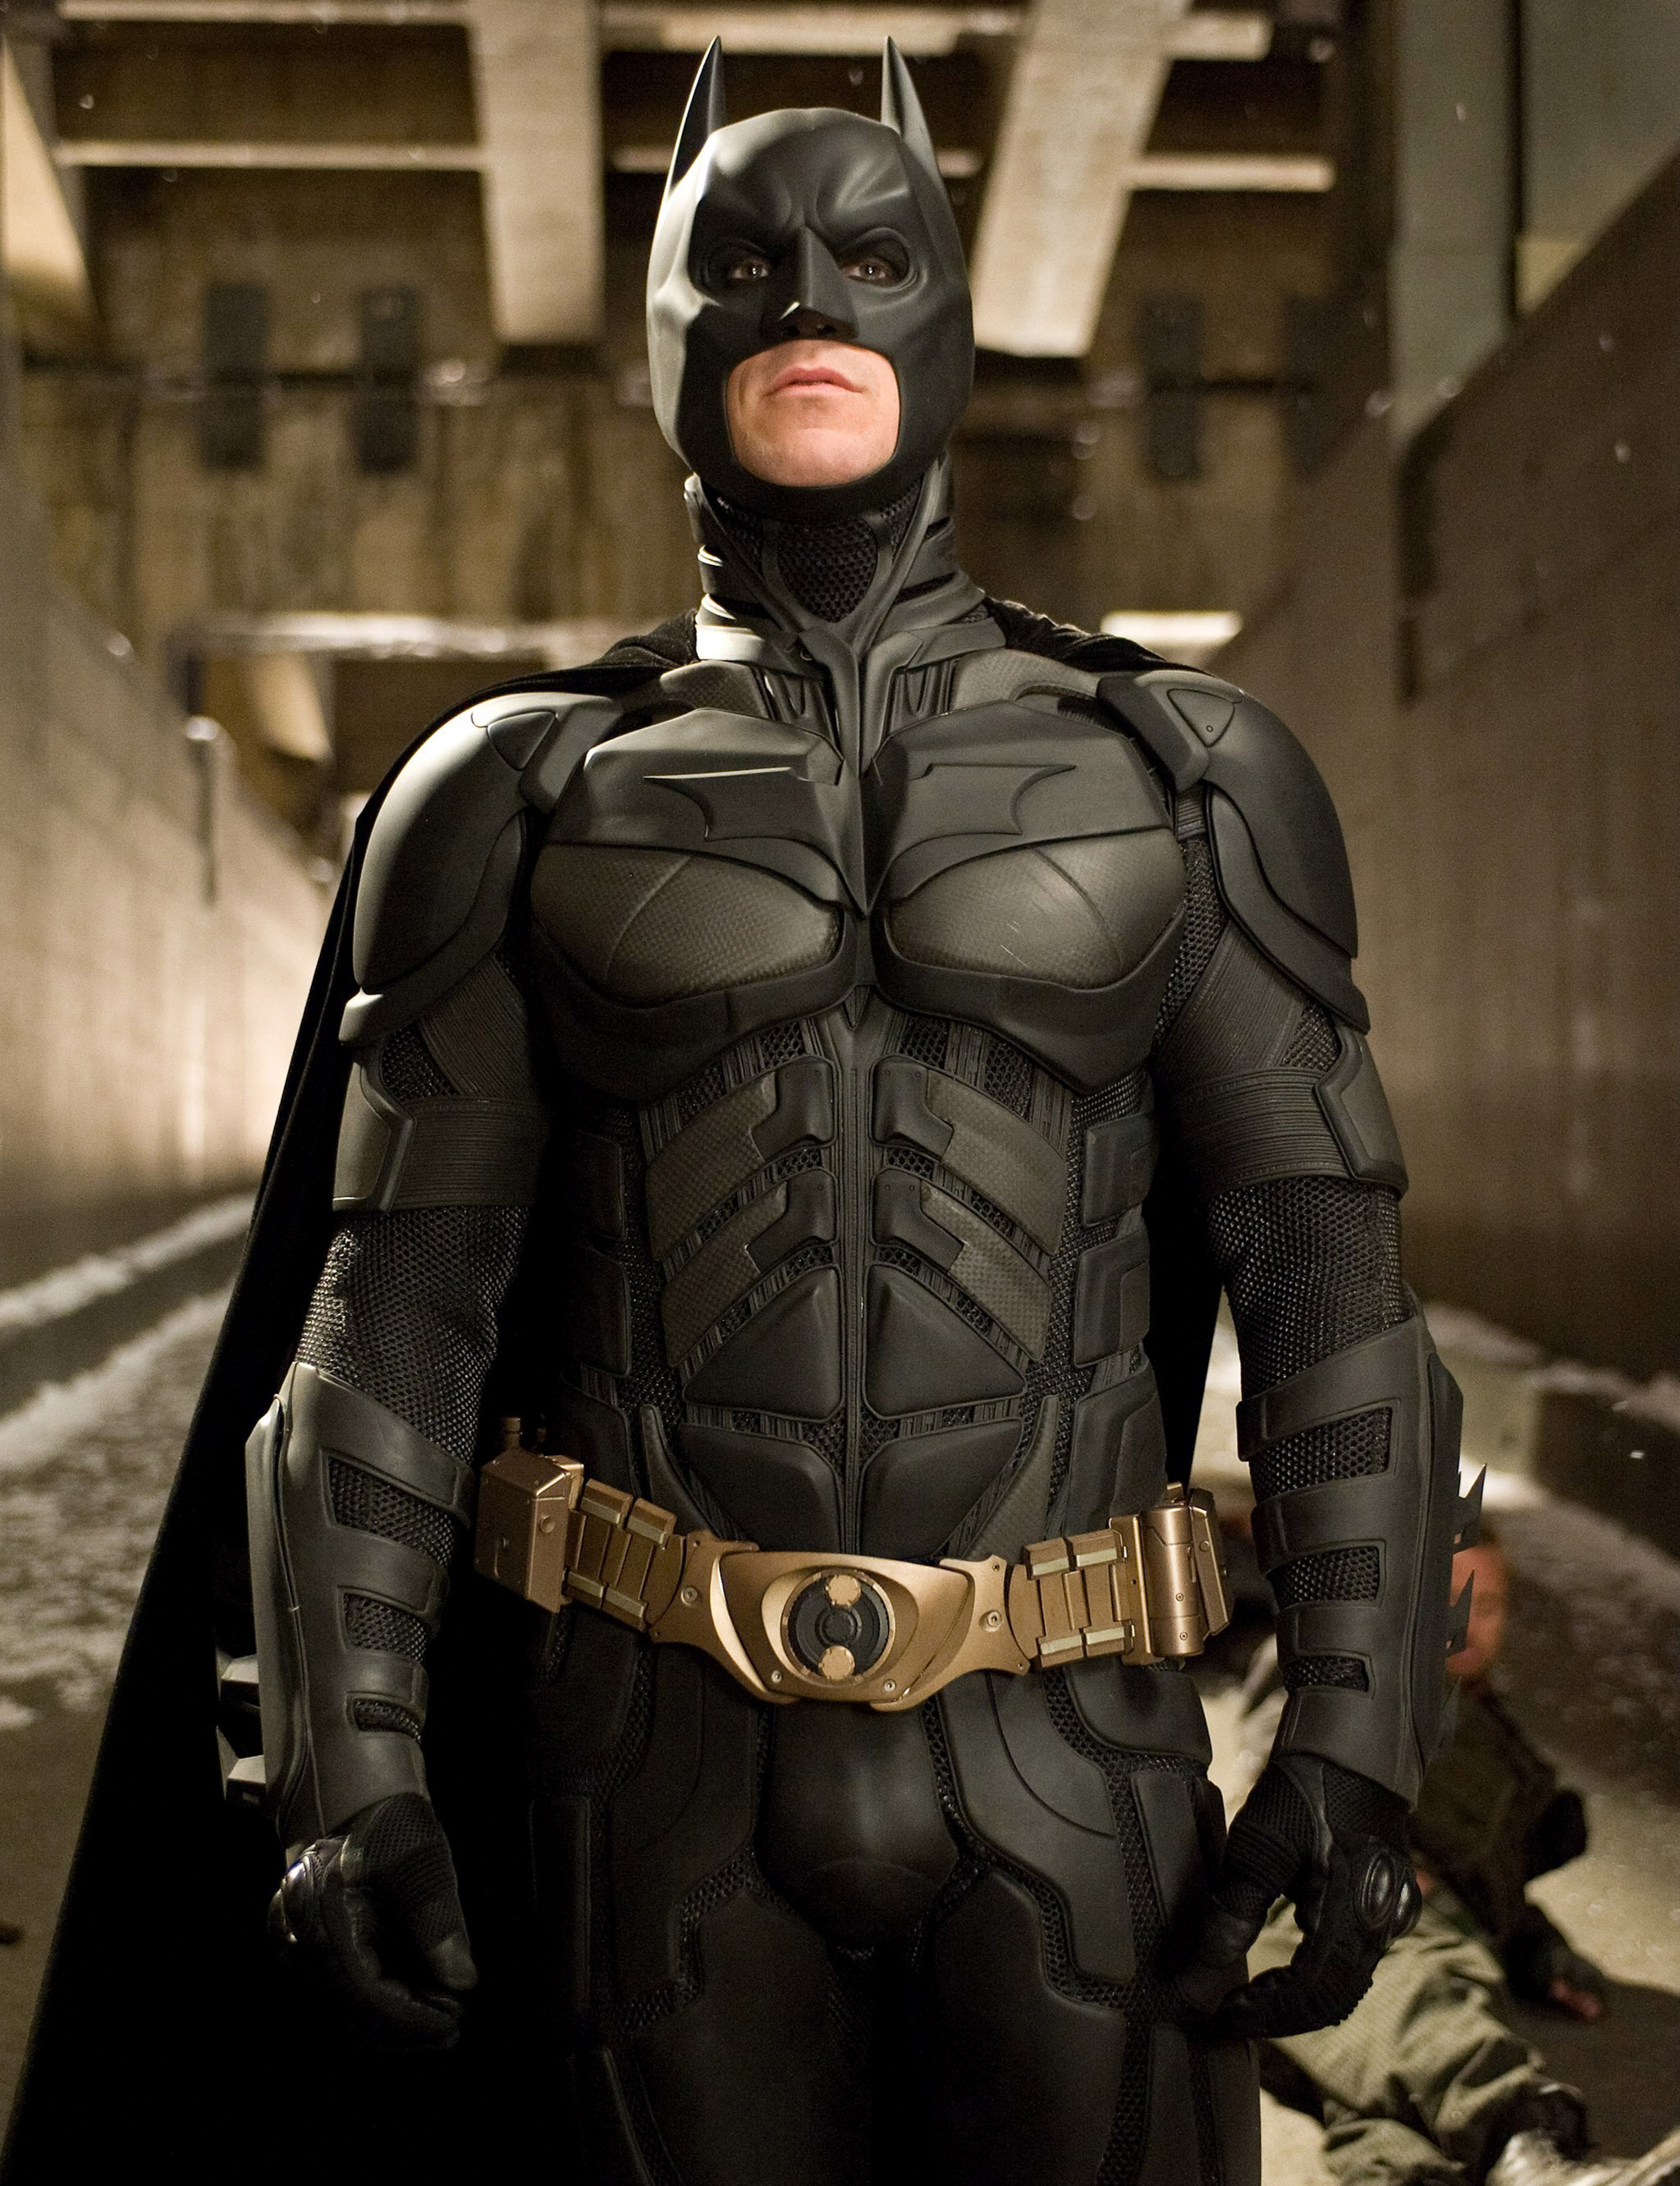 Christian Bale in The Dark Knight Rises in 2008.